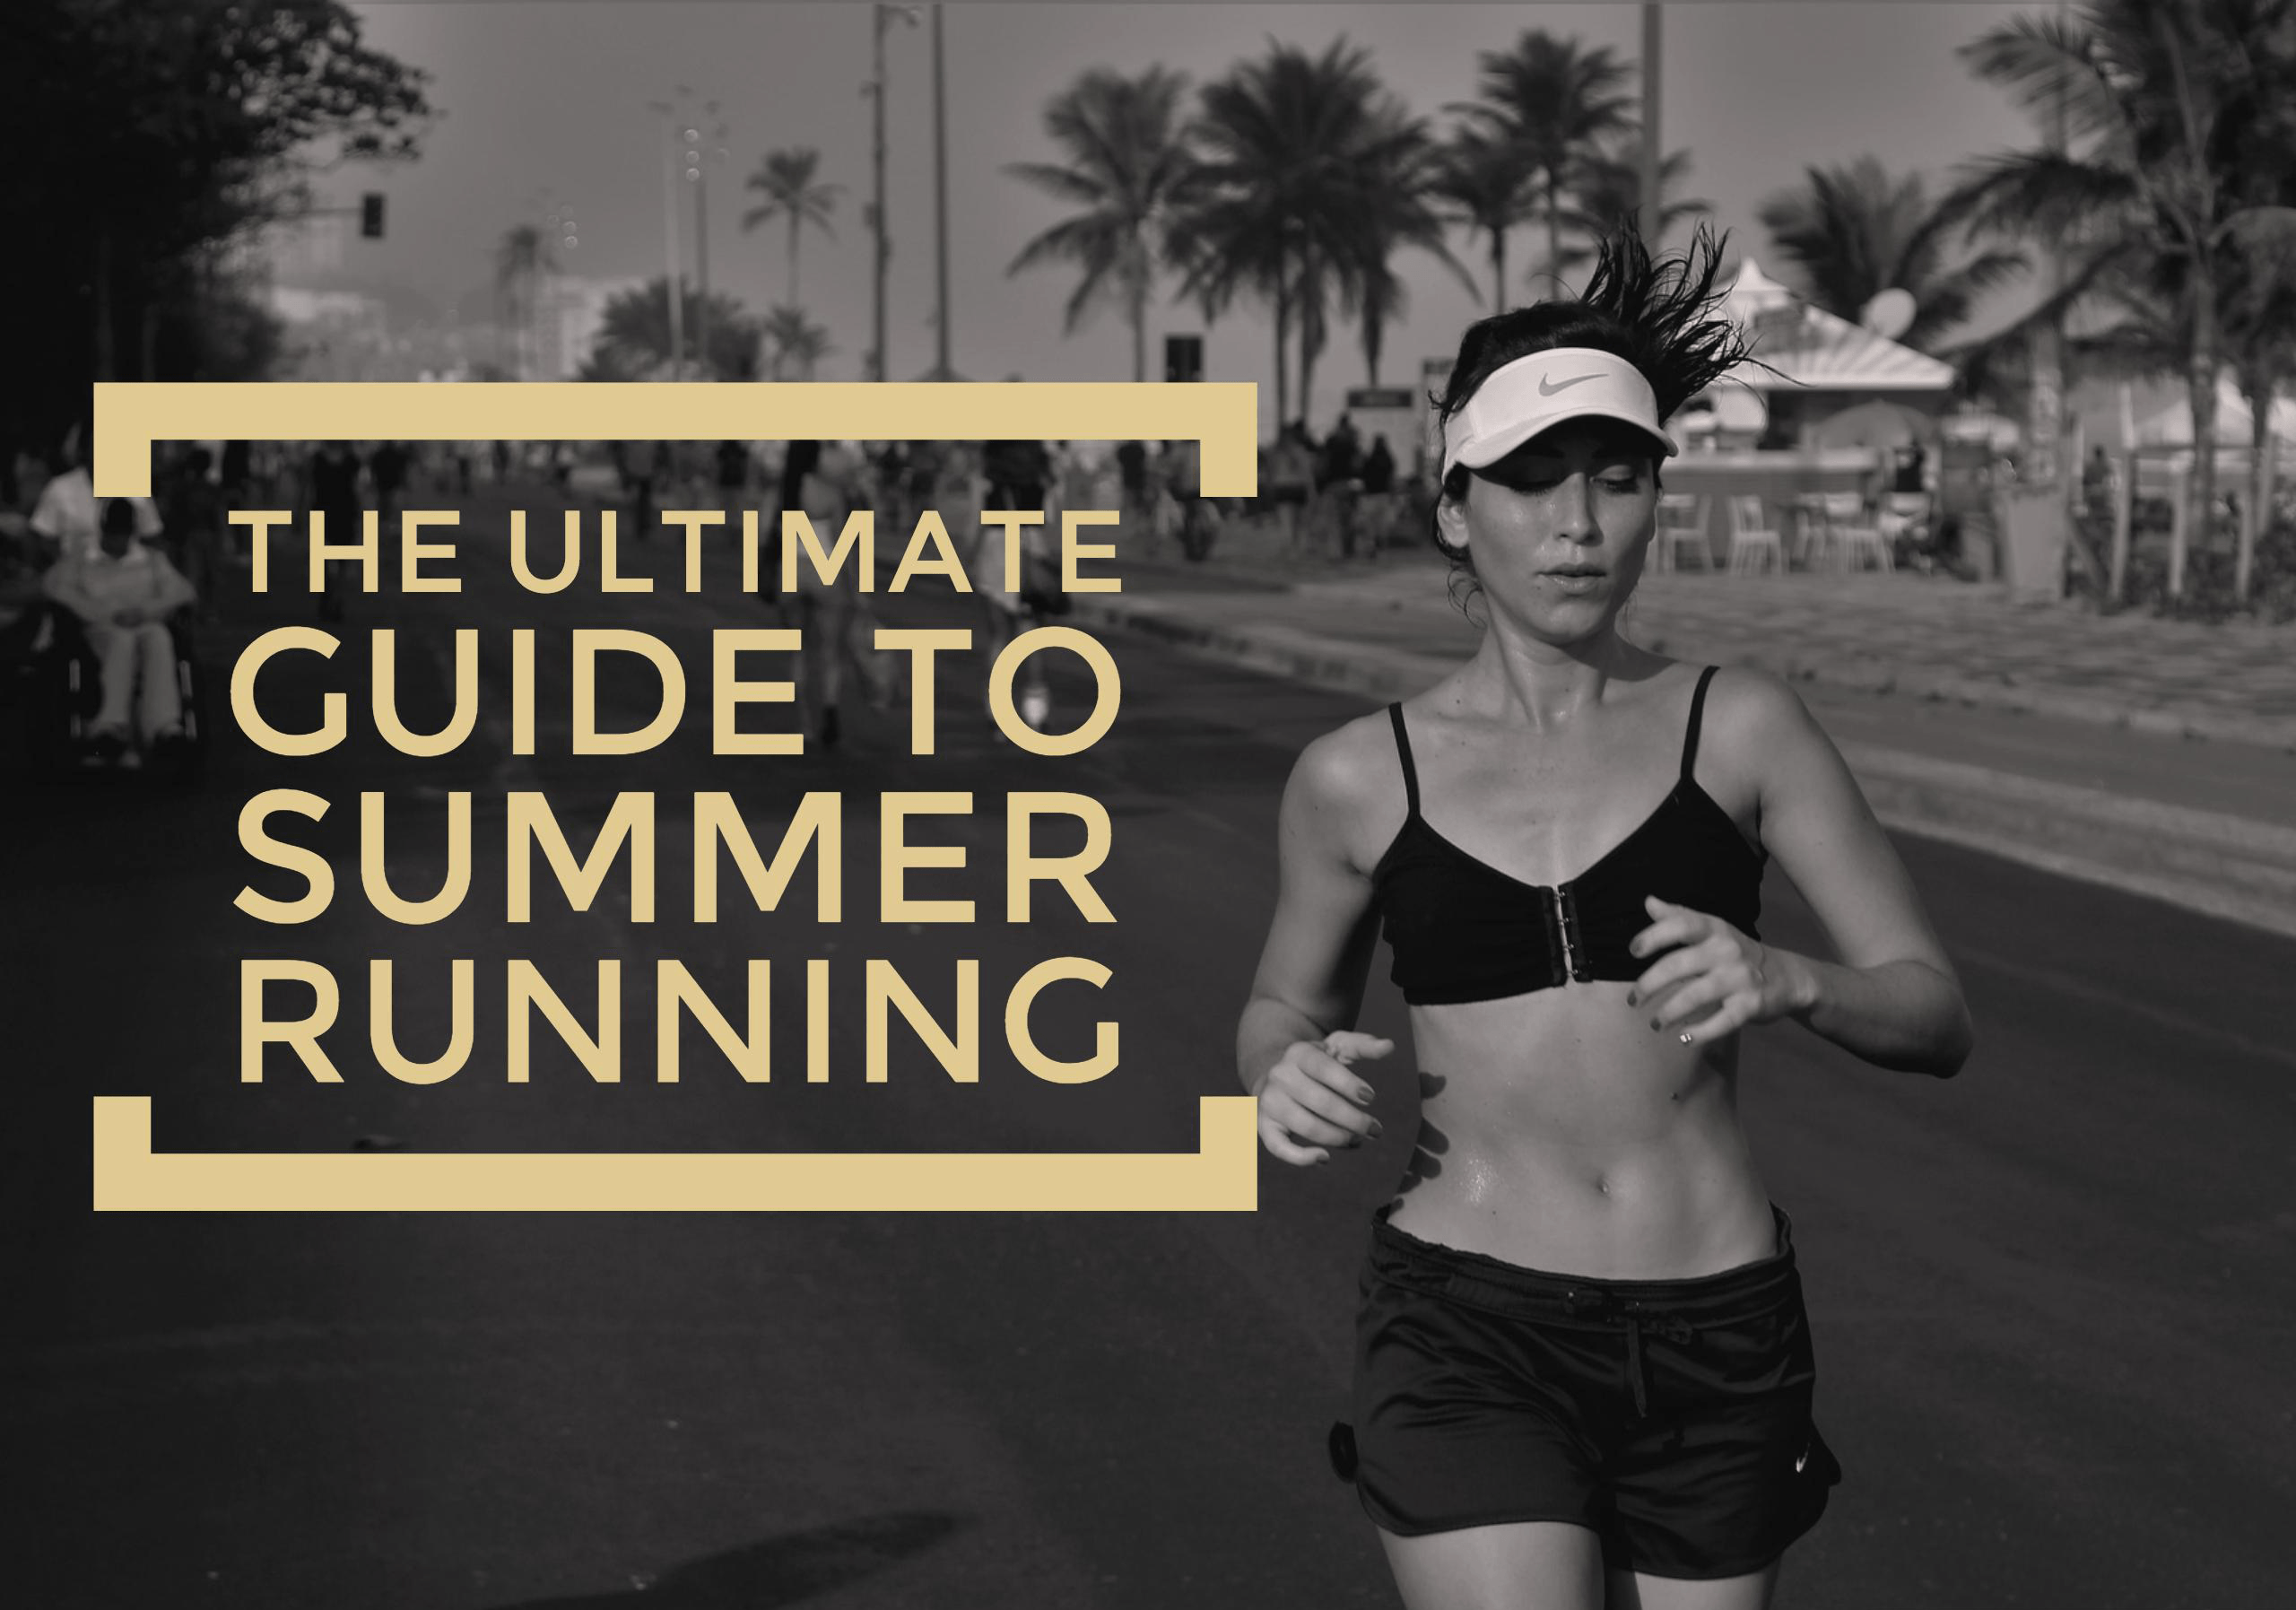 If you are training for a race this summer, there are several things you need to think about especiallu when the tempatures go up. Our ultimate guide to summer running will keep you cool and injury free.